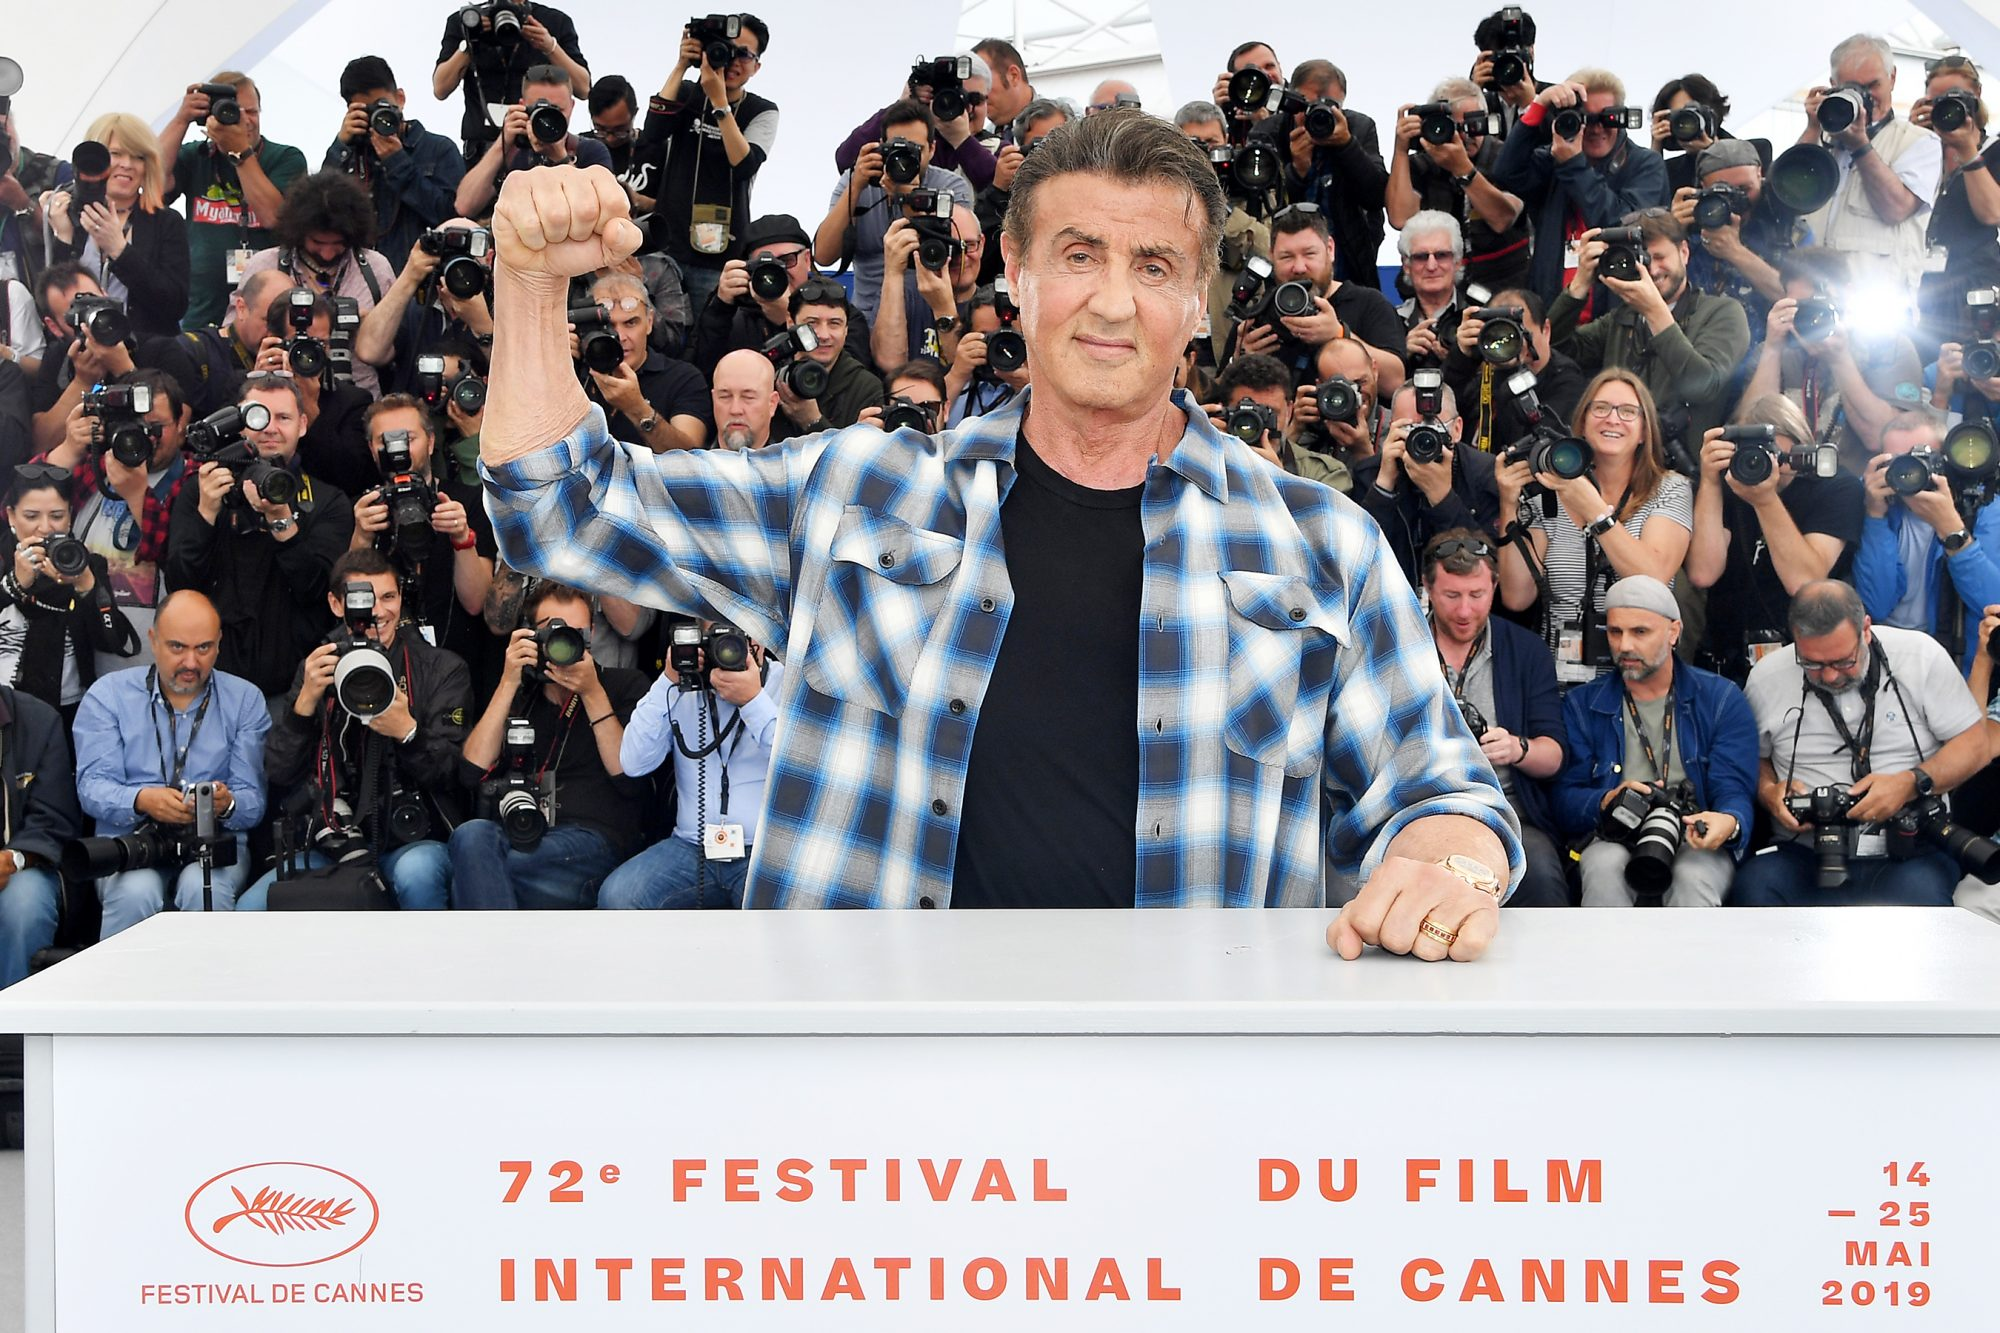 Sylvester Stallone Cannes